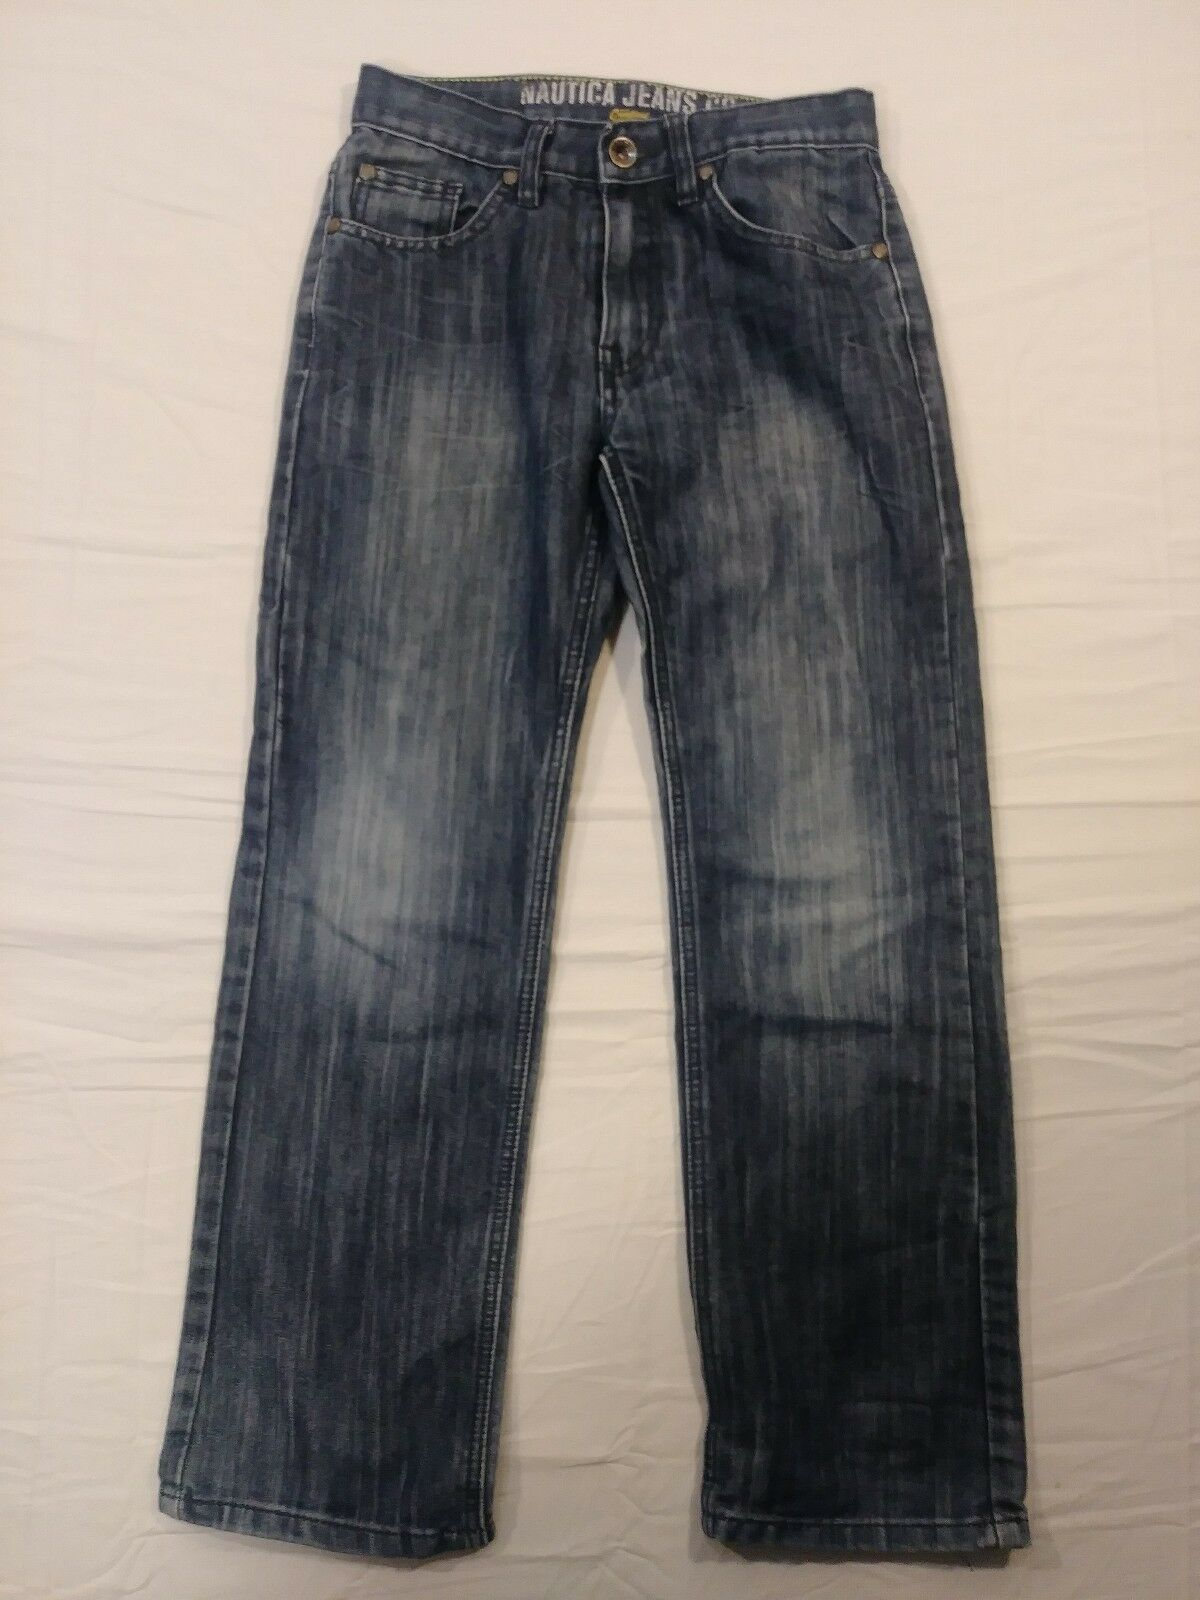 Nautica Boys Size 12 Mid Wash Blue Denim 5 Pocket Straight Leg Slim Jeans (#8)